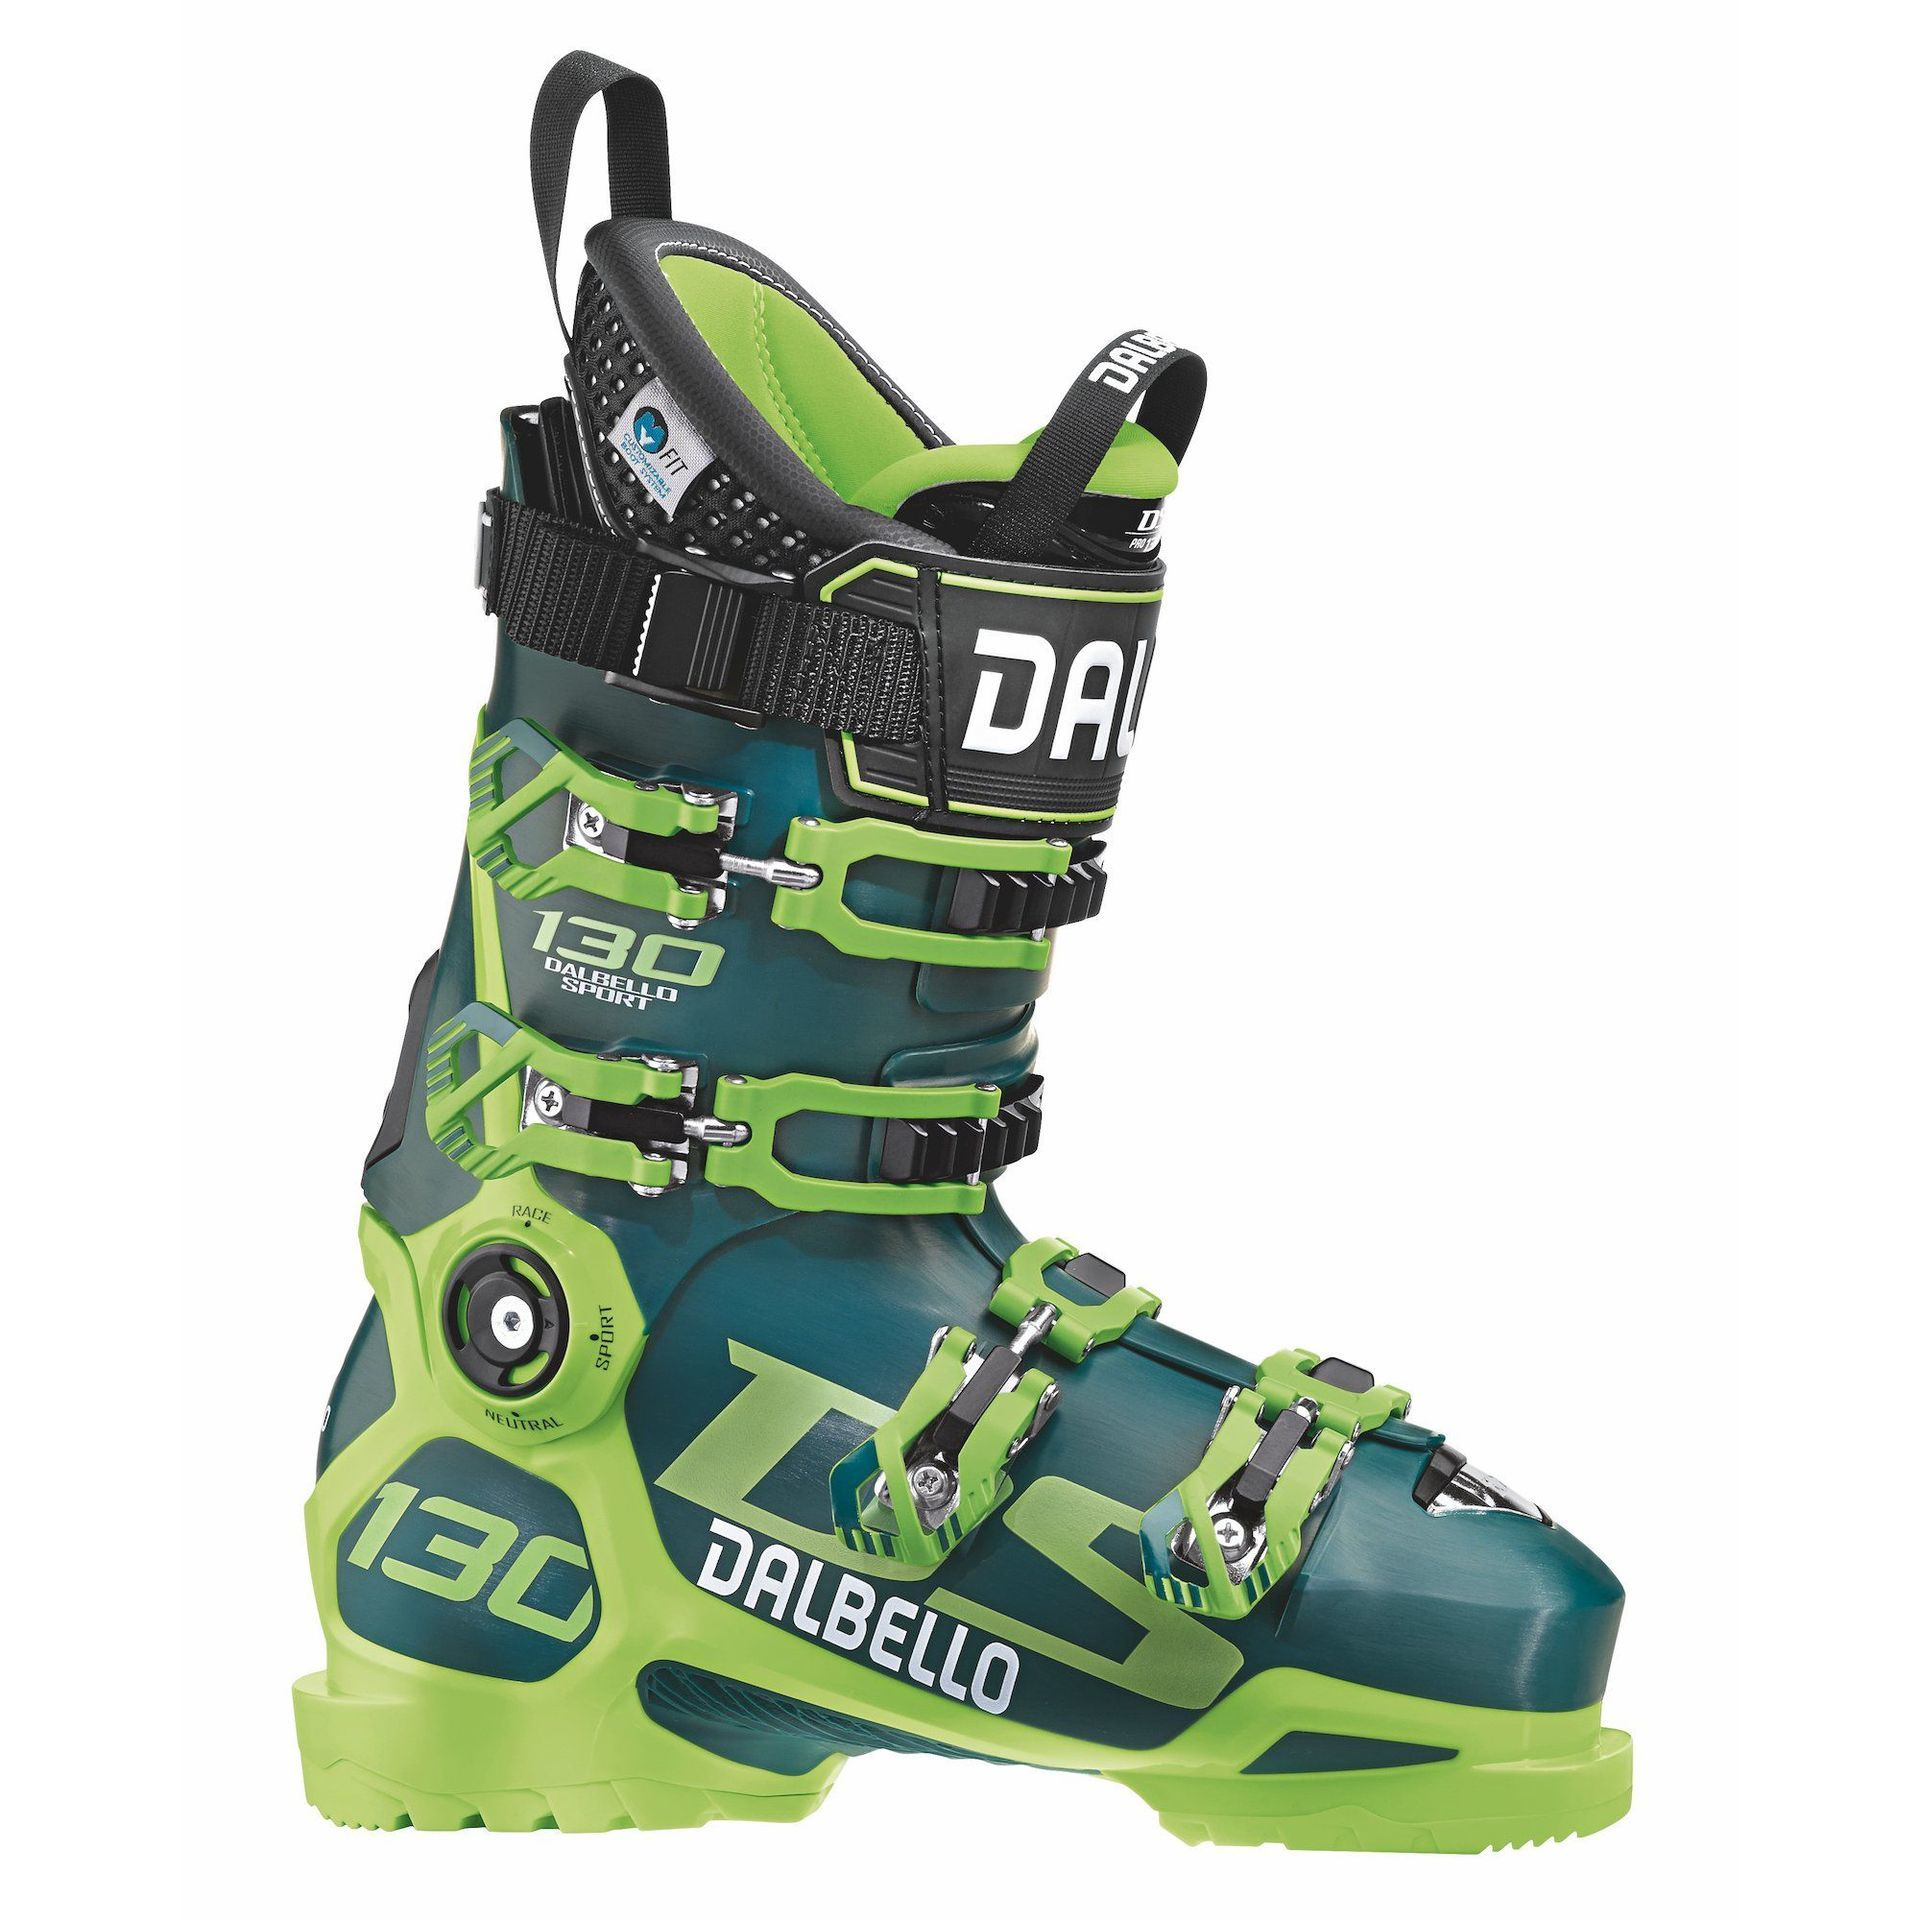 BUTY NARCIARSKIE DALBELLO DS 130 PETROL|LIME D1803001-00